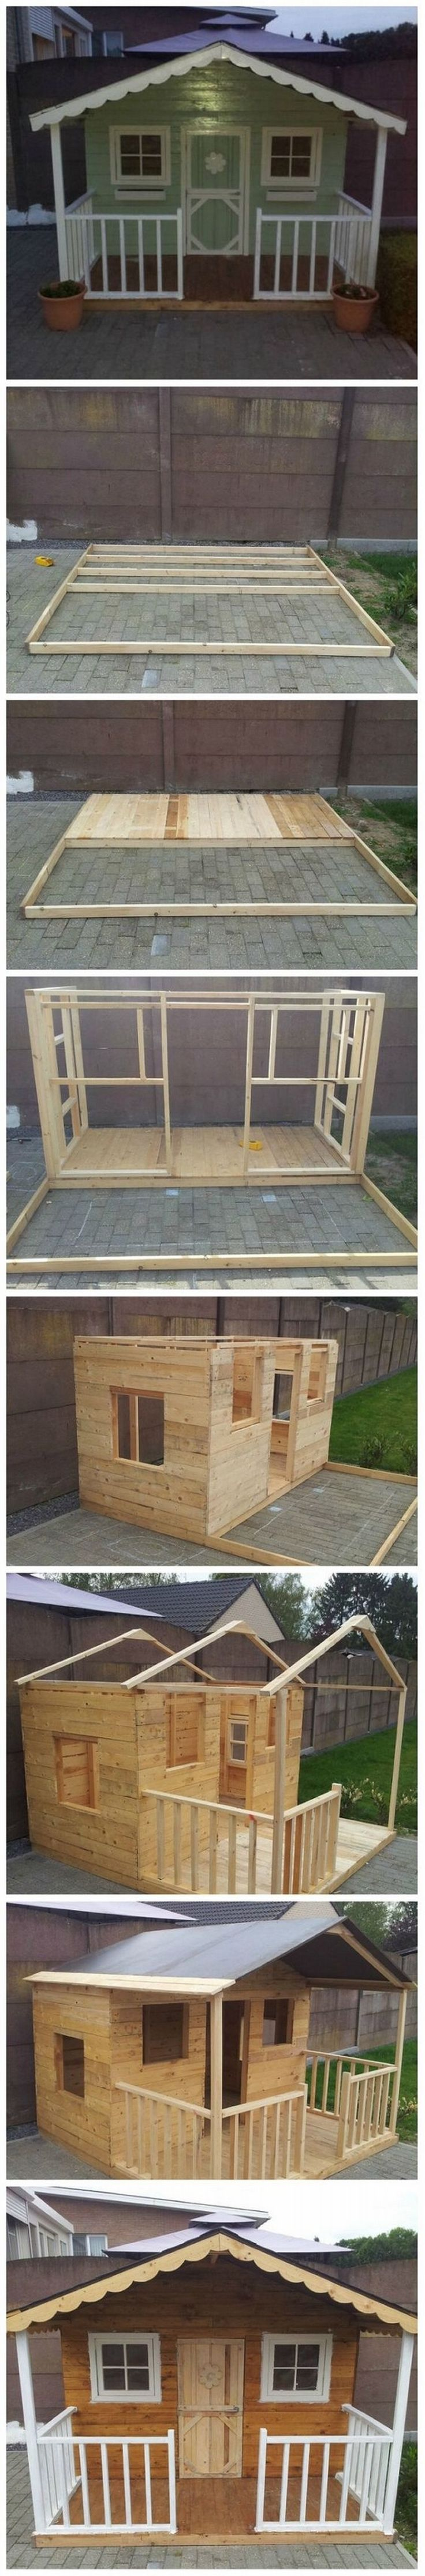 DIY Pallet Playhouse                                                                                                                                                                                 More